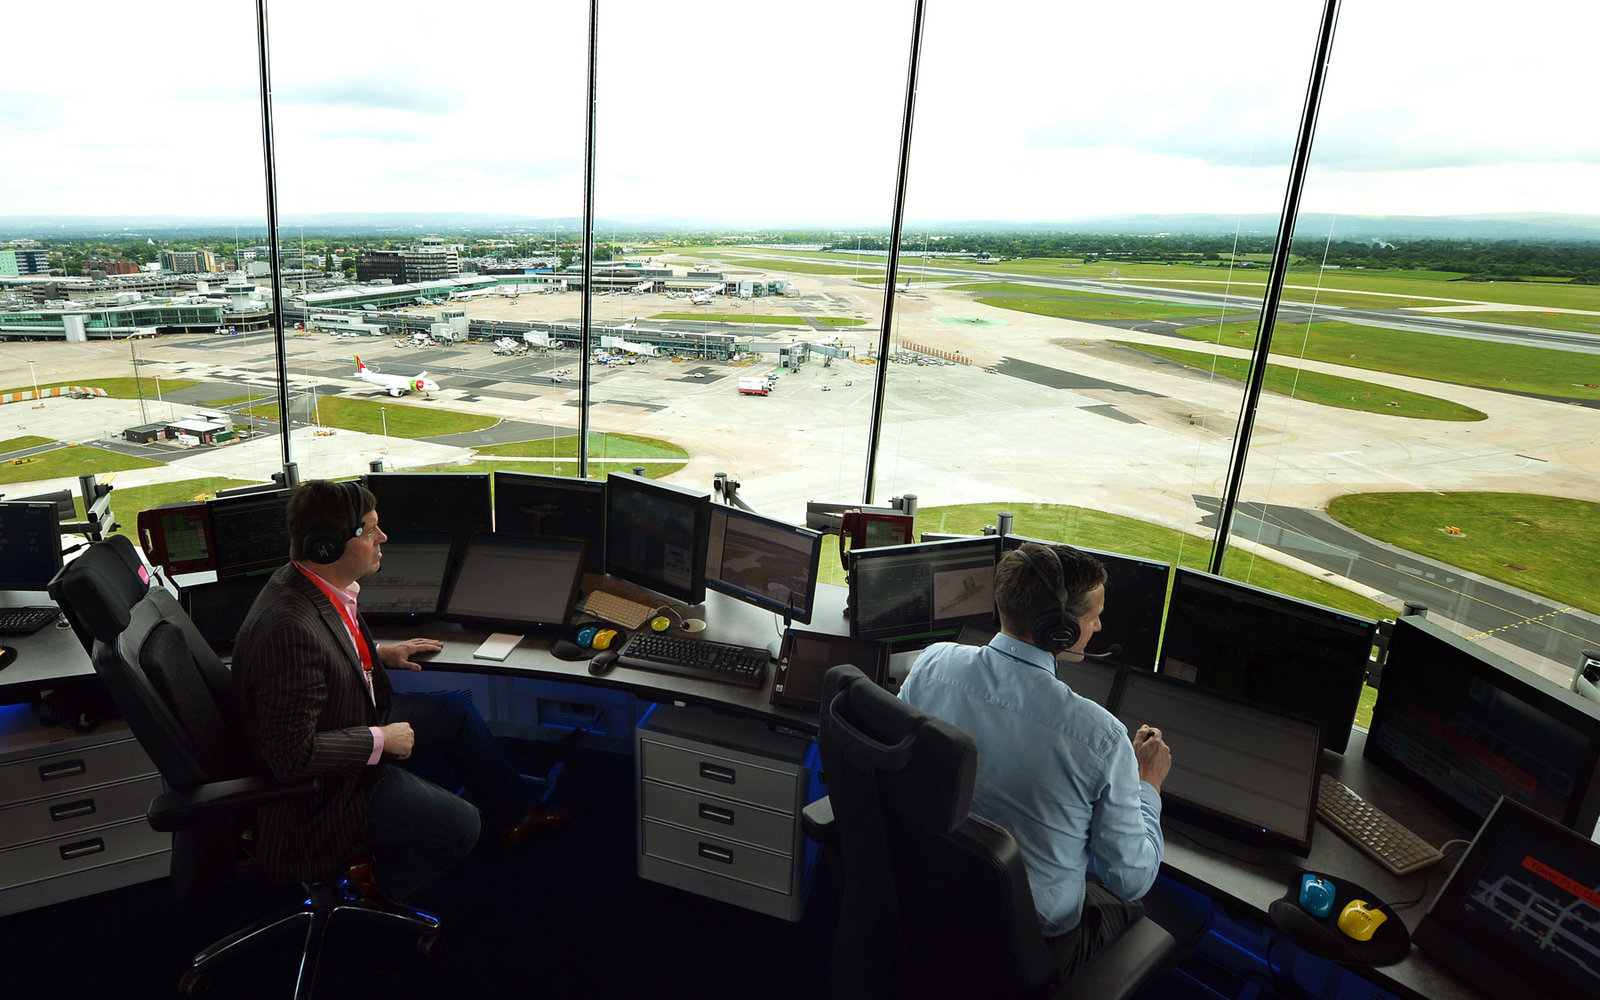 The view from an air traffic control tower.